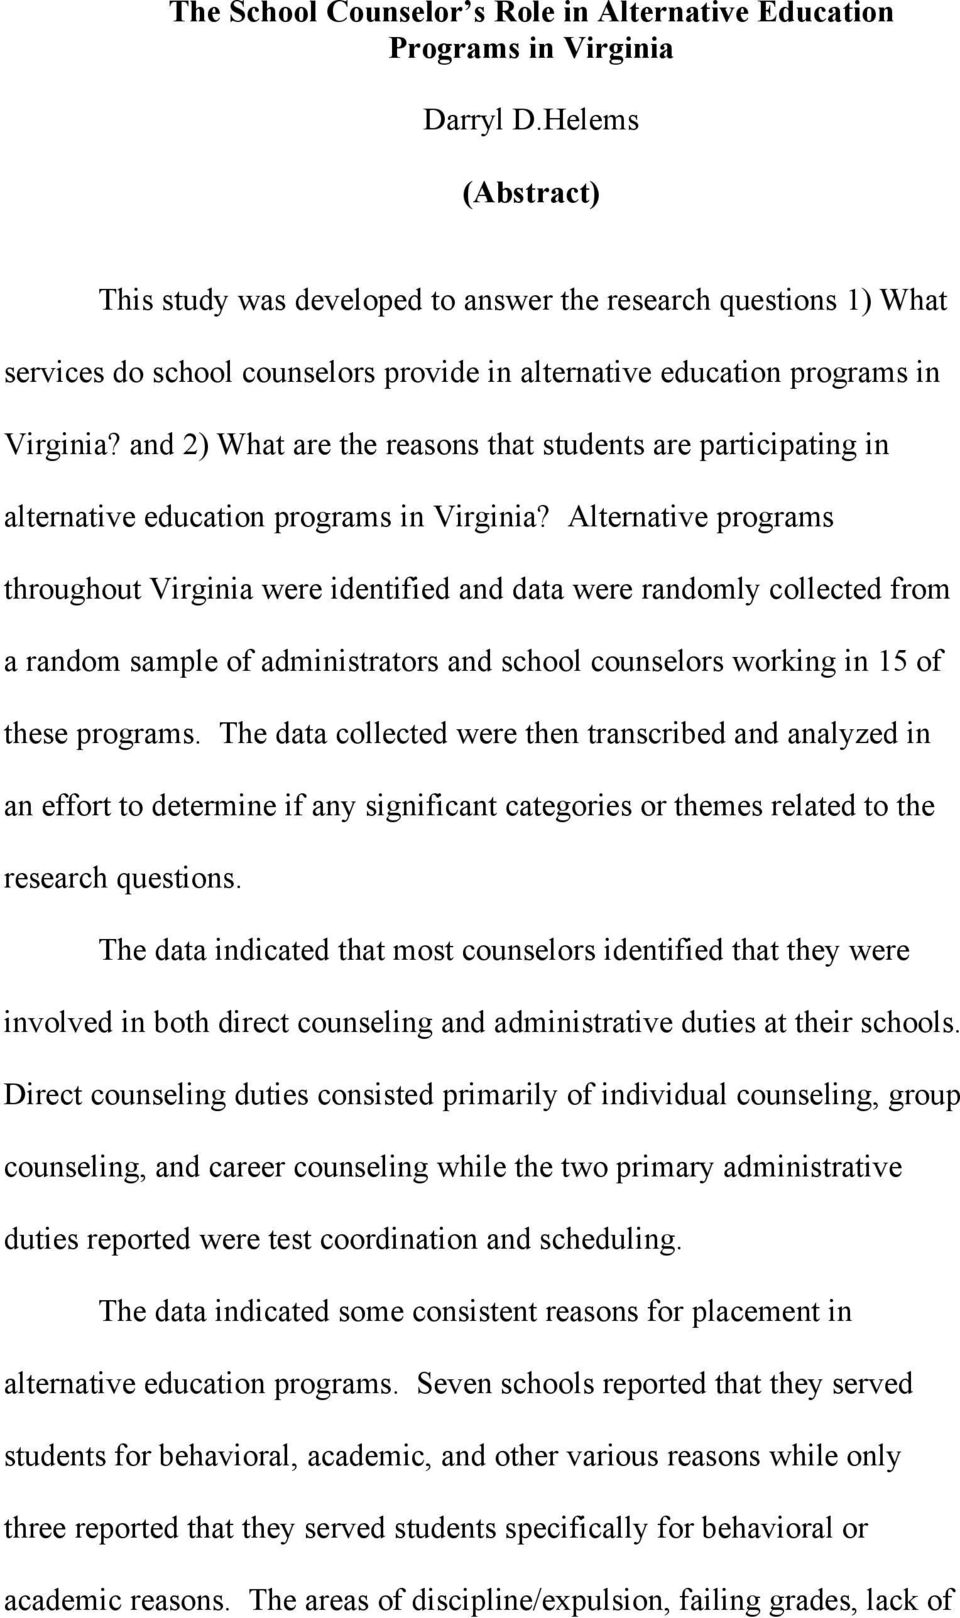 and 2) What are the reasons that students are participating in alternative education programs in Virginia?